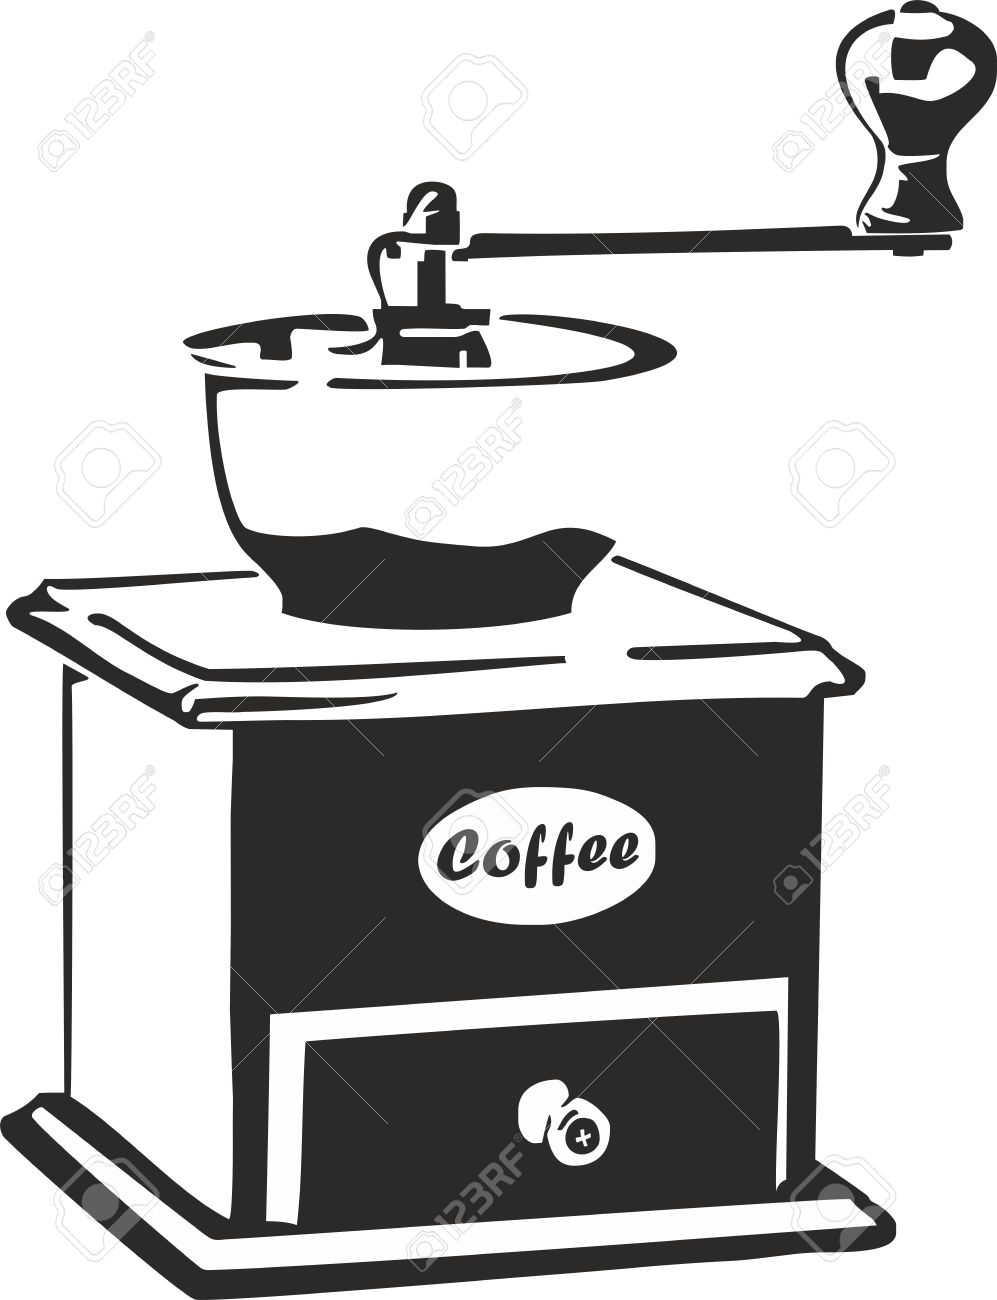 Vector Illustration Of An Old Coffee Grinder Royalty Free Cliparts.